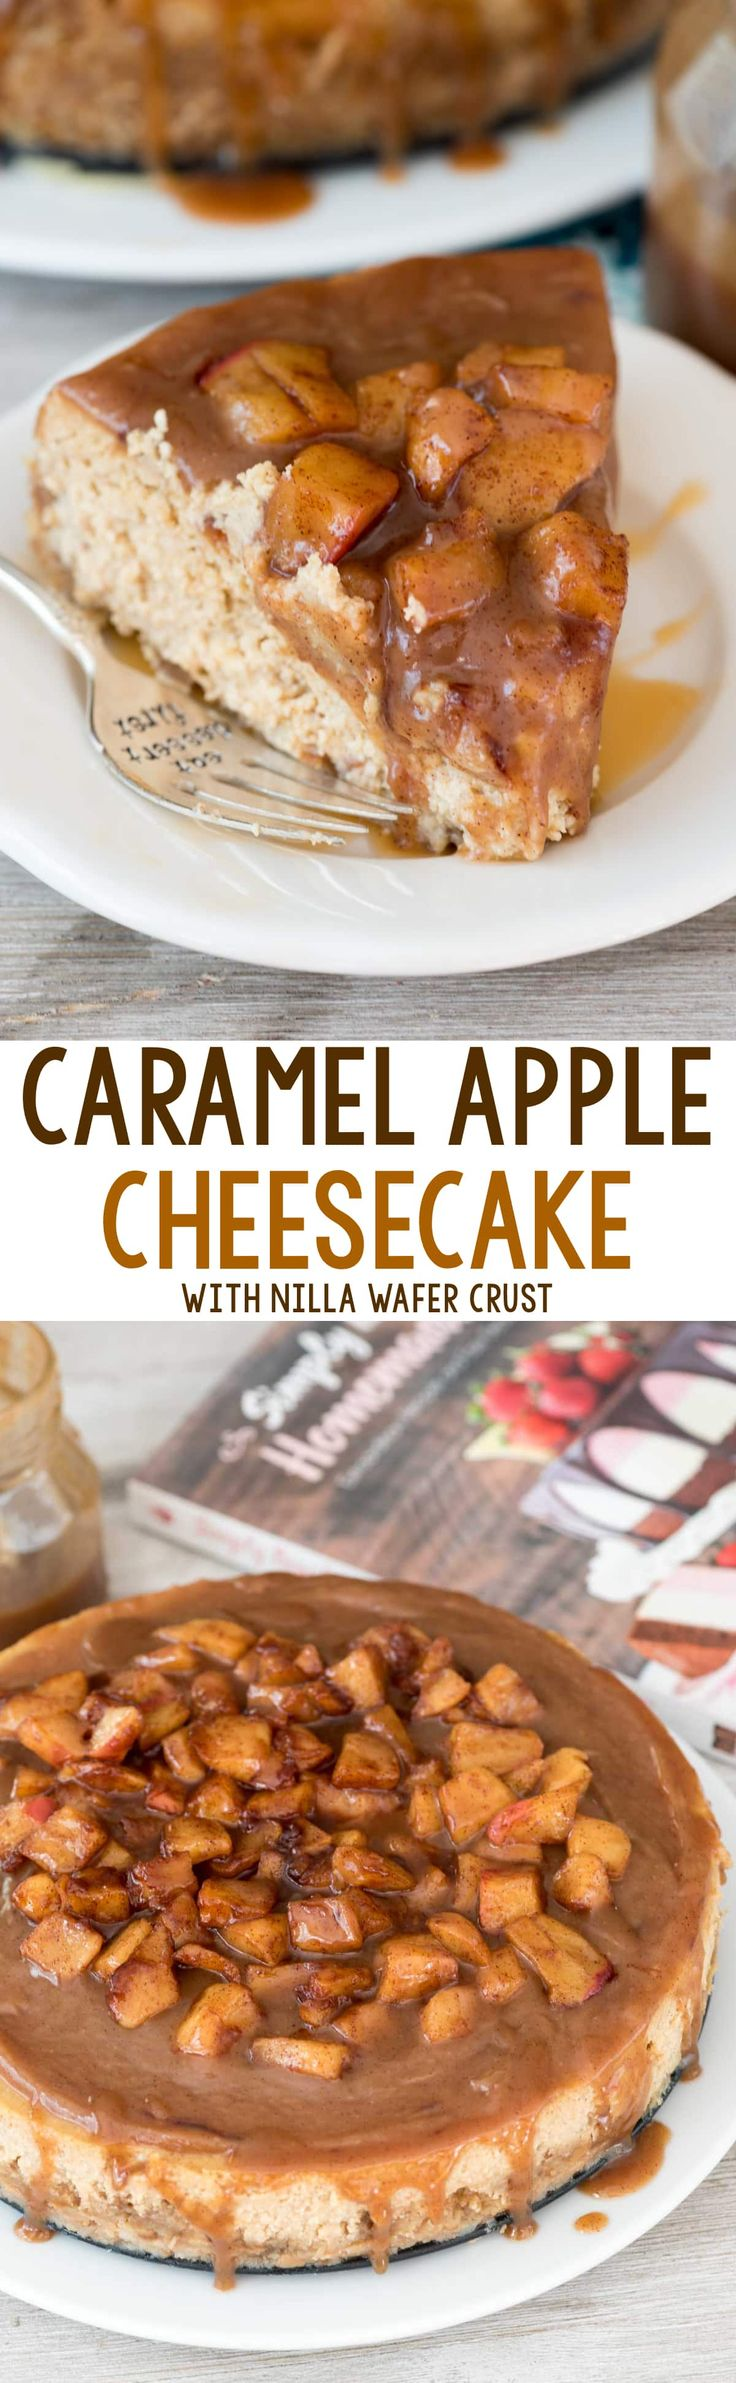 Caramel Apple Cheesecake - this scratch cheesecake recipe is FULL of caramel and apple flavor and has a Nilla Wafer Crust! It's topped with caramel and tons of apples - such a great fall dessert!